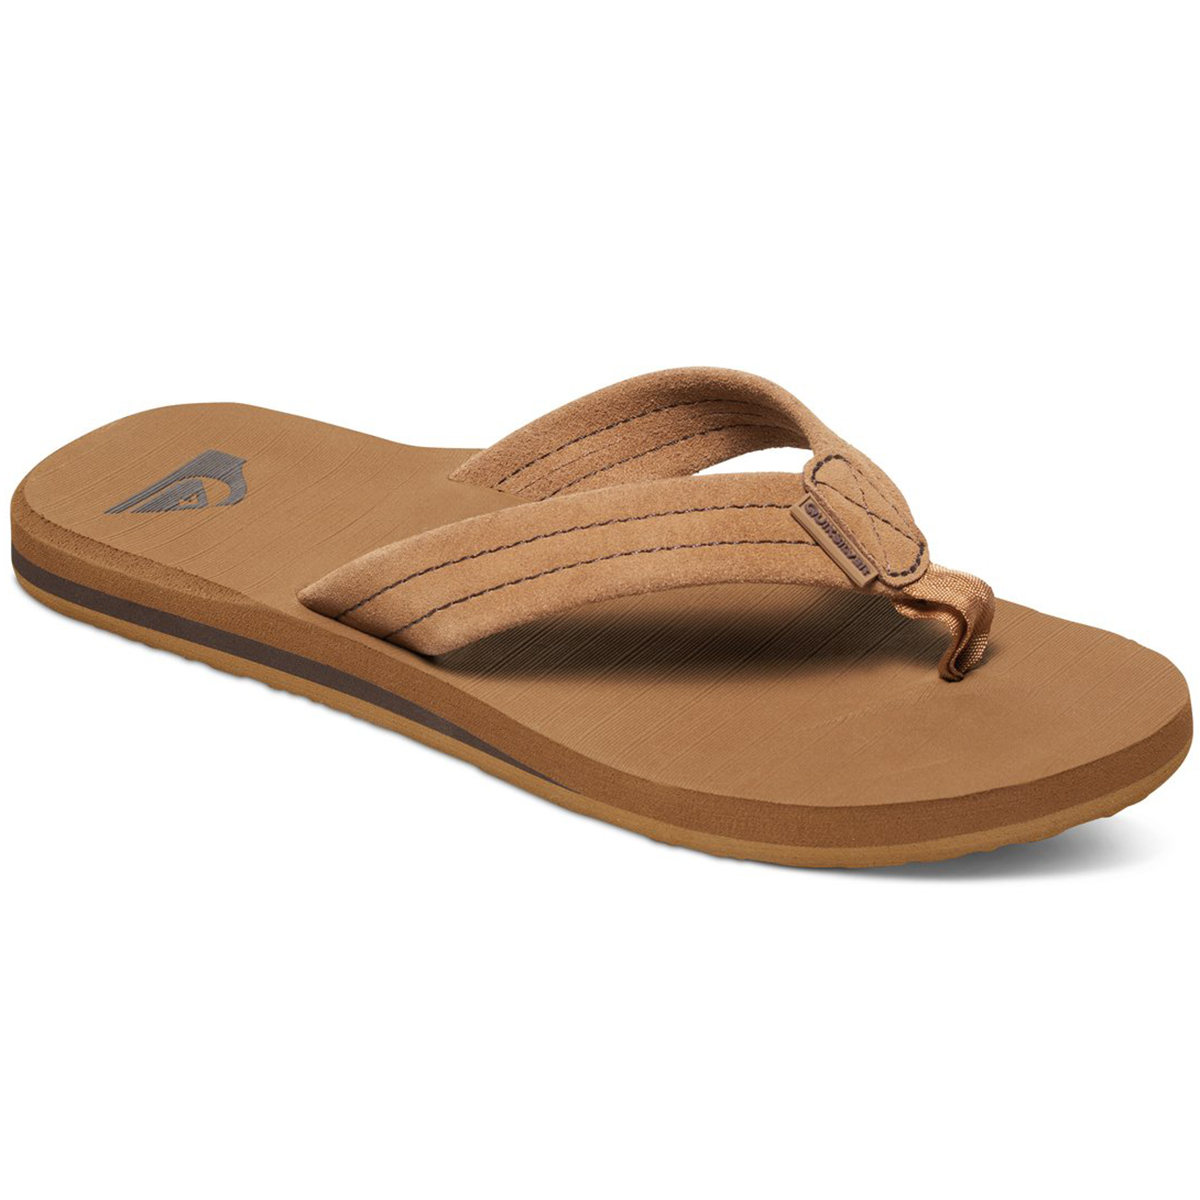 Quiksilver Men's Carver Suede Sandals - Brown, 9